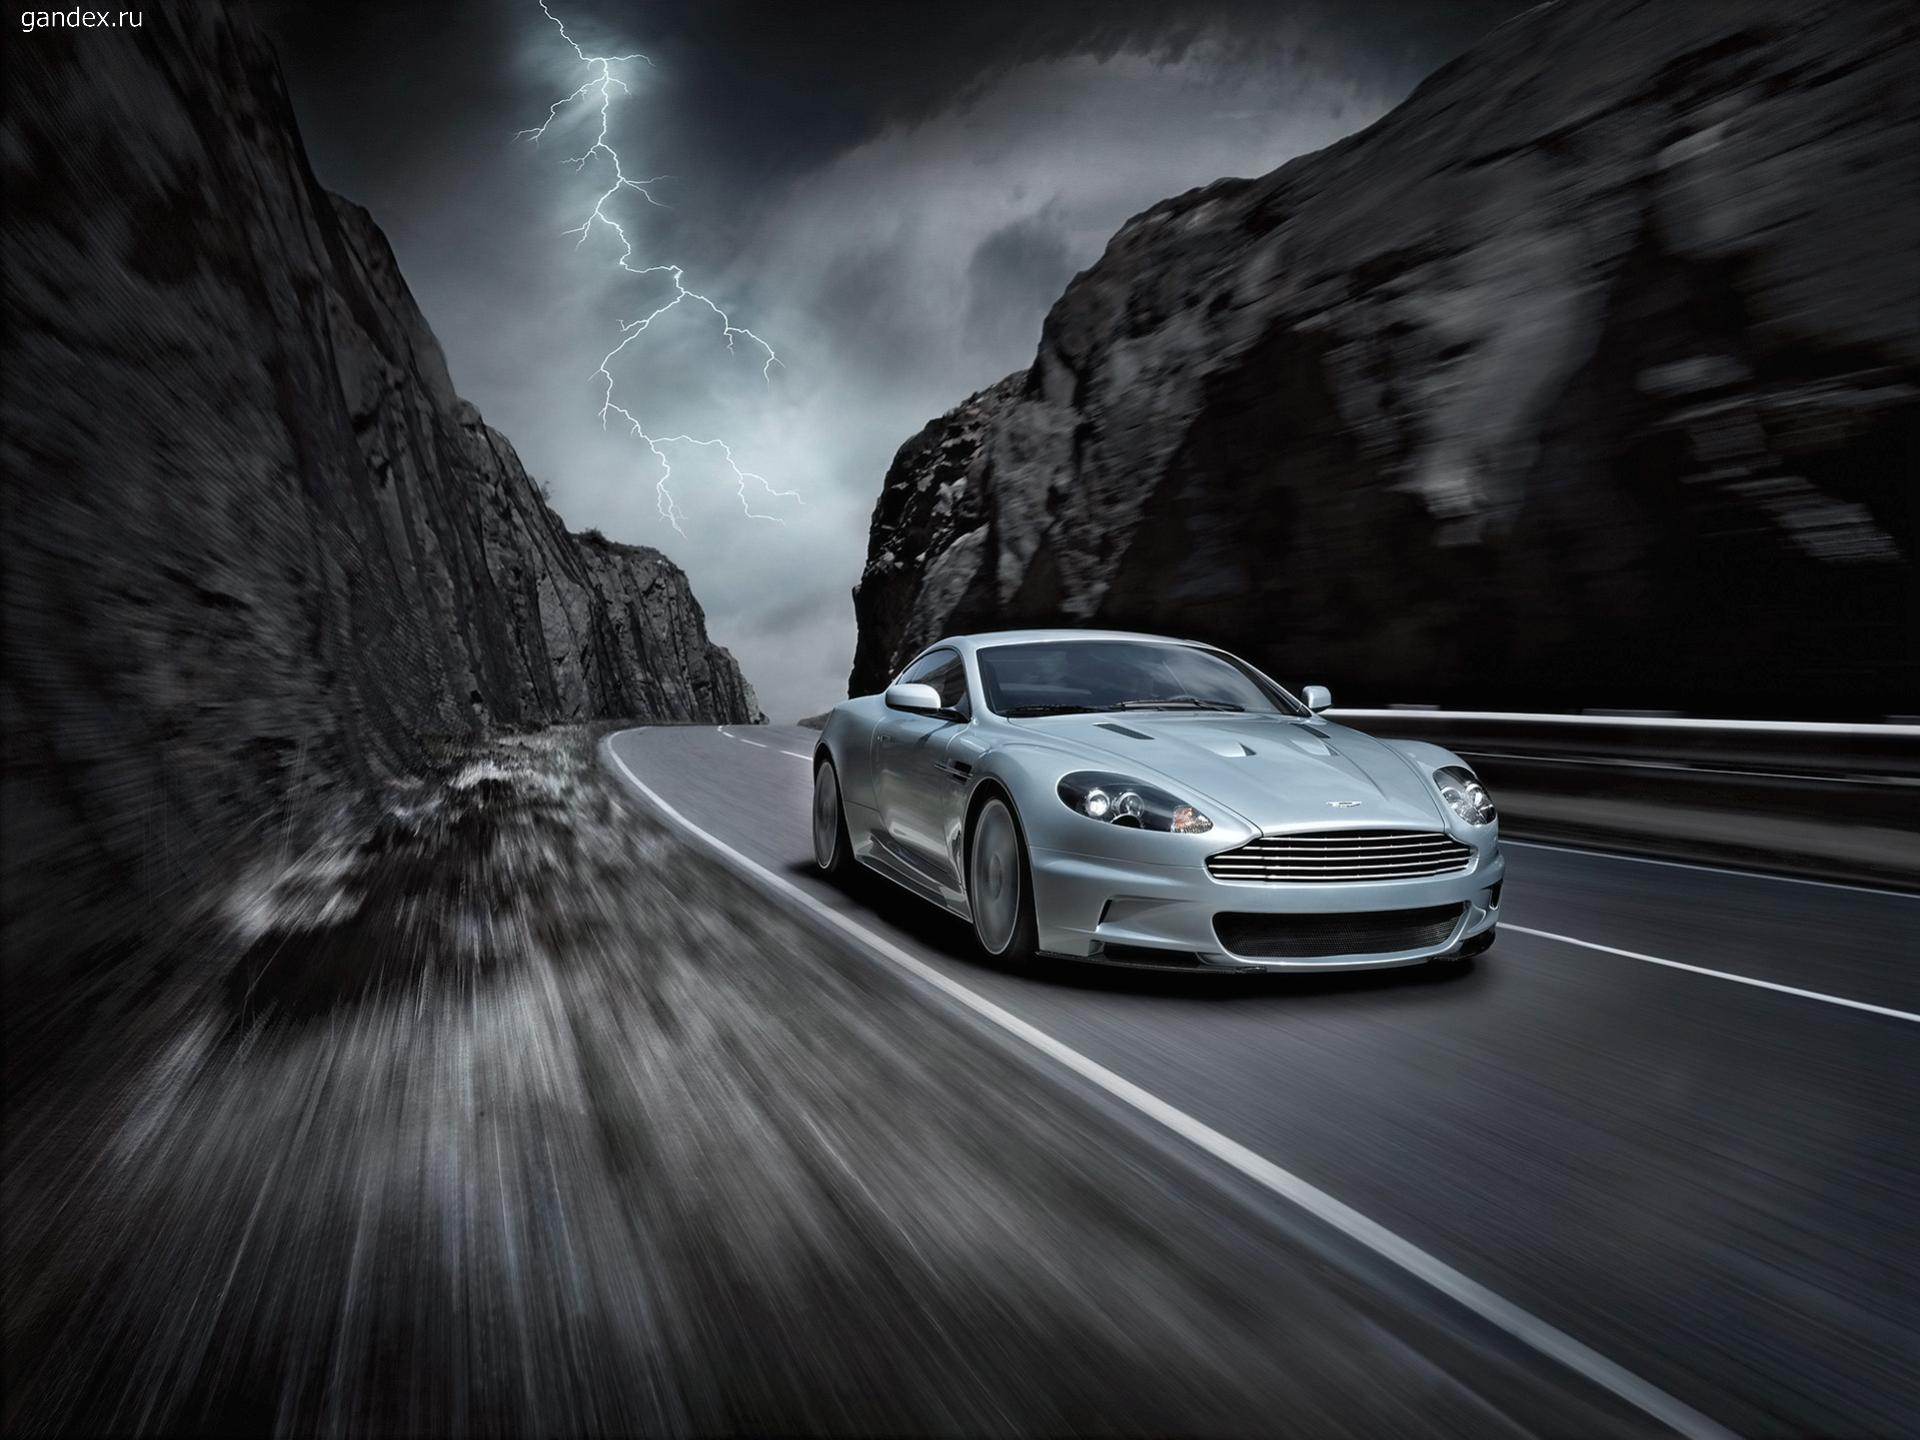 Aston Martin on the mountain road, traveling at high speed, the lightning in the sky.